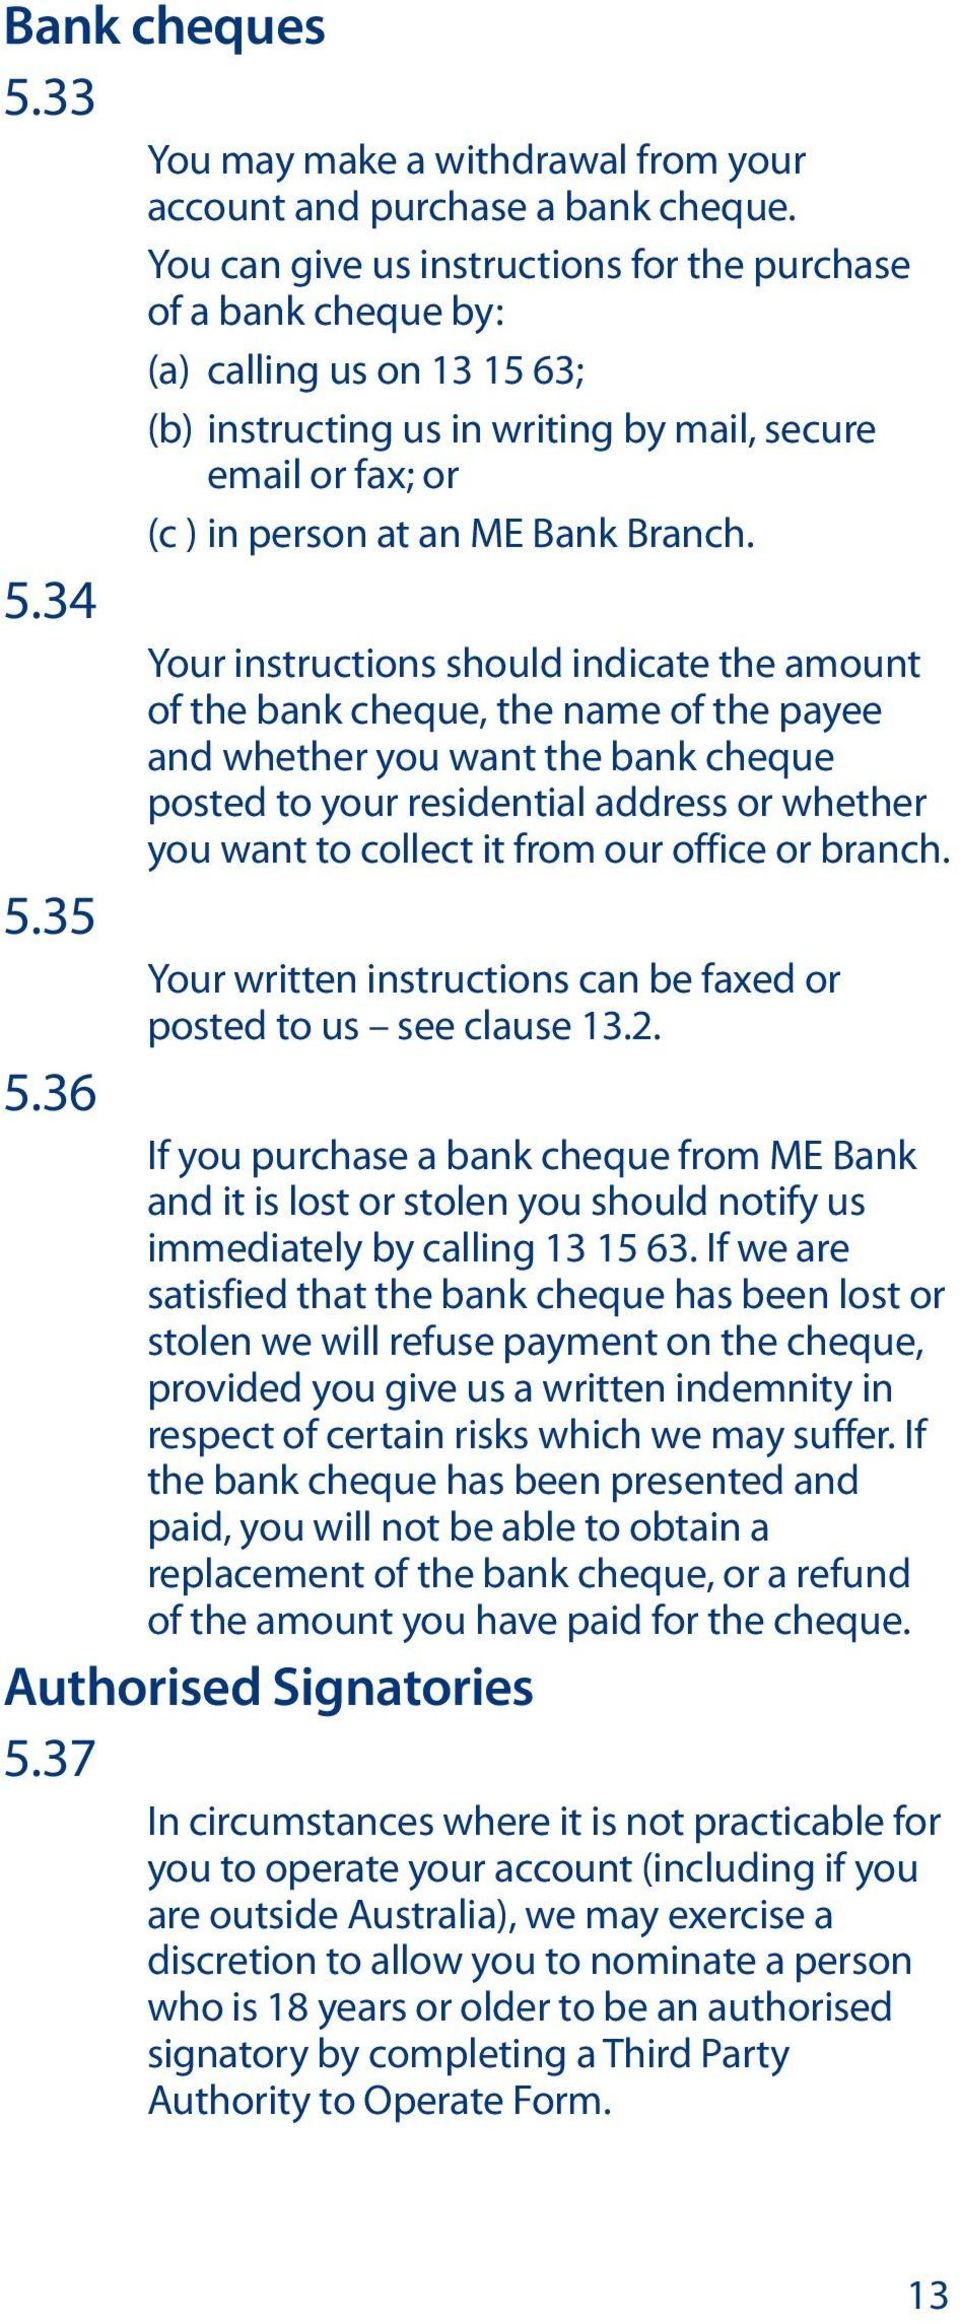 34 Your instructions should indicate the amount of the bank cheque, the name of the payee and whether you want the bank cheque posted to your residential address or whether you want to collect it